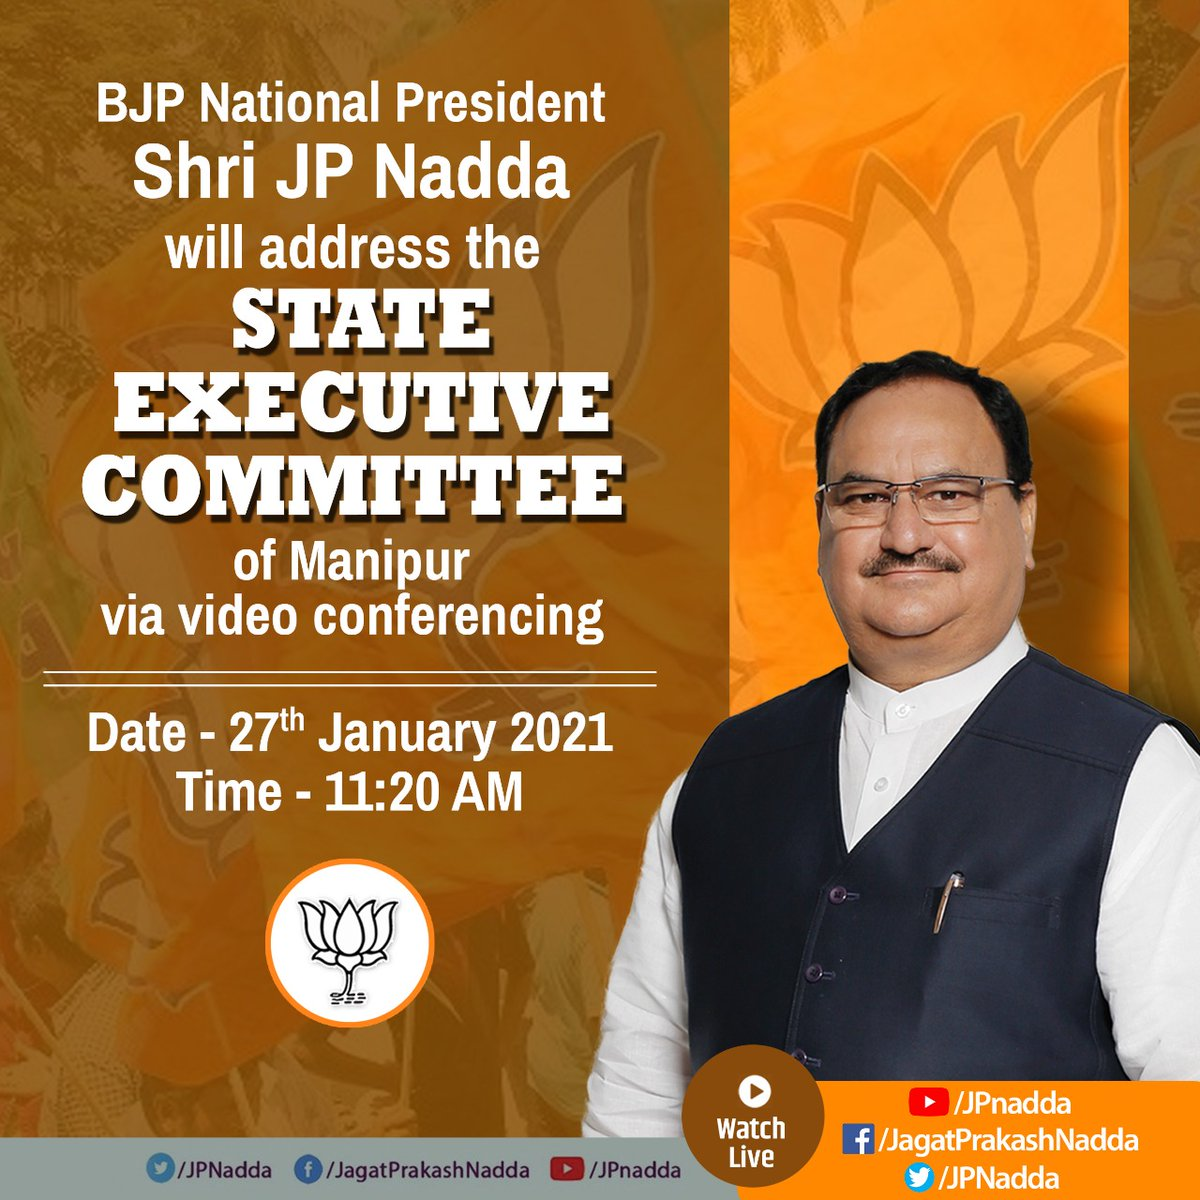 BJP National President Shri @JPNadda Ji will address the State Executive Committee of Manipur via video conferencing at 11:20 AM tomorrow.